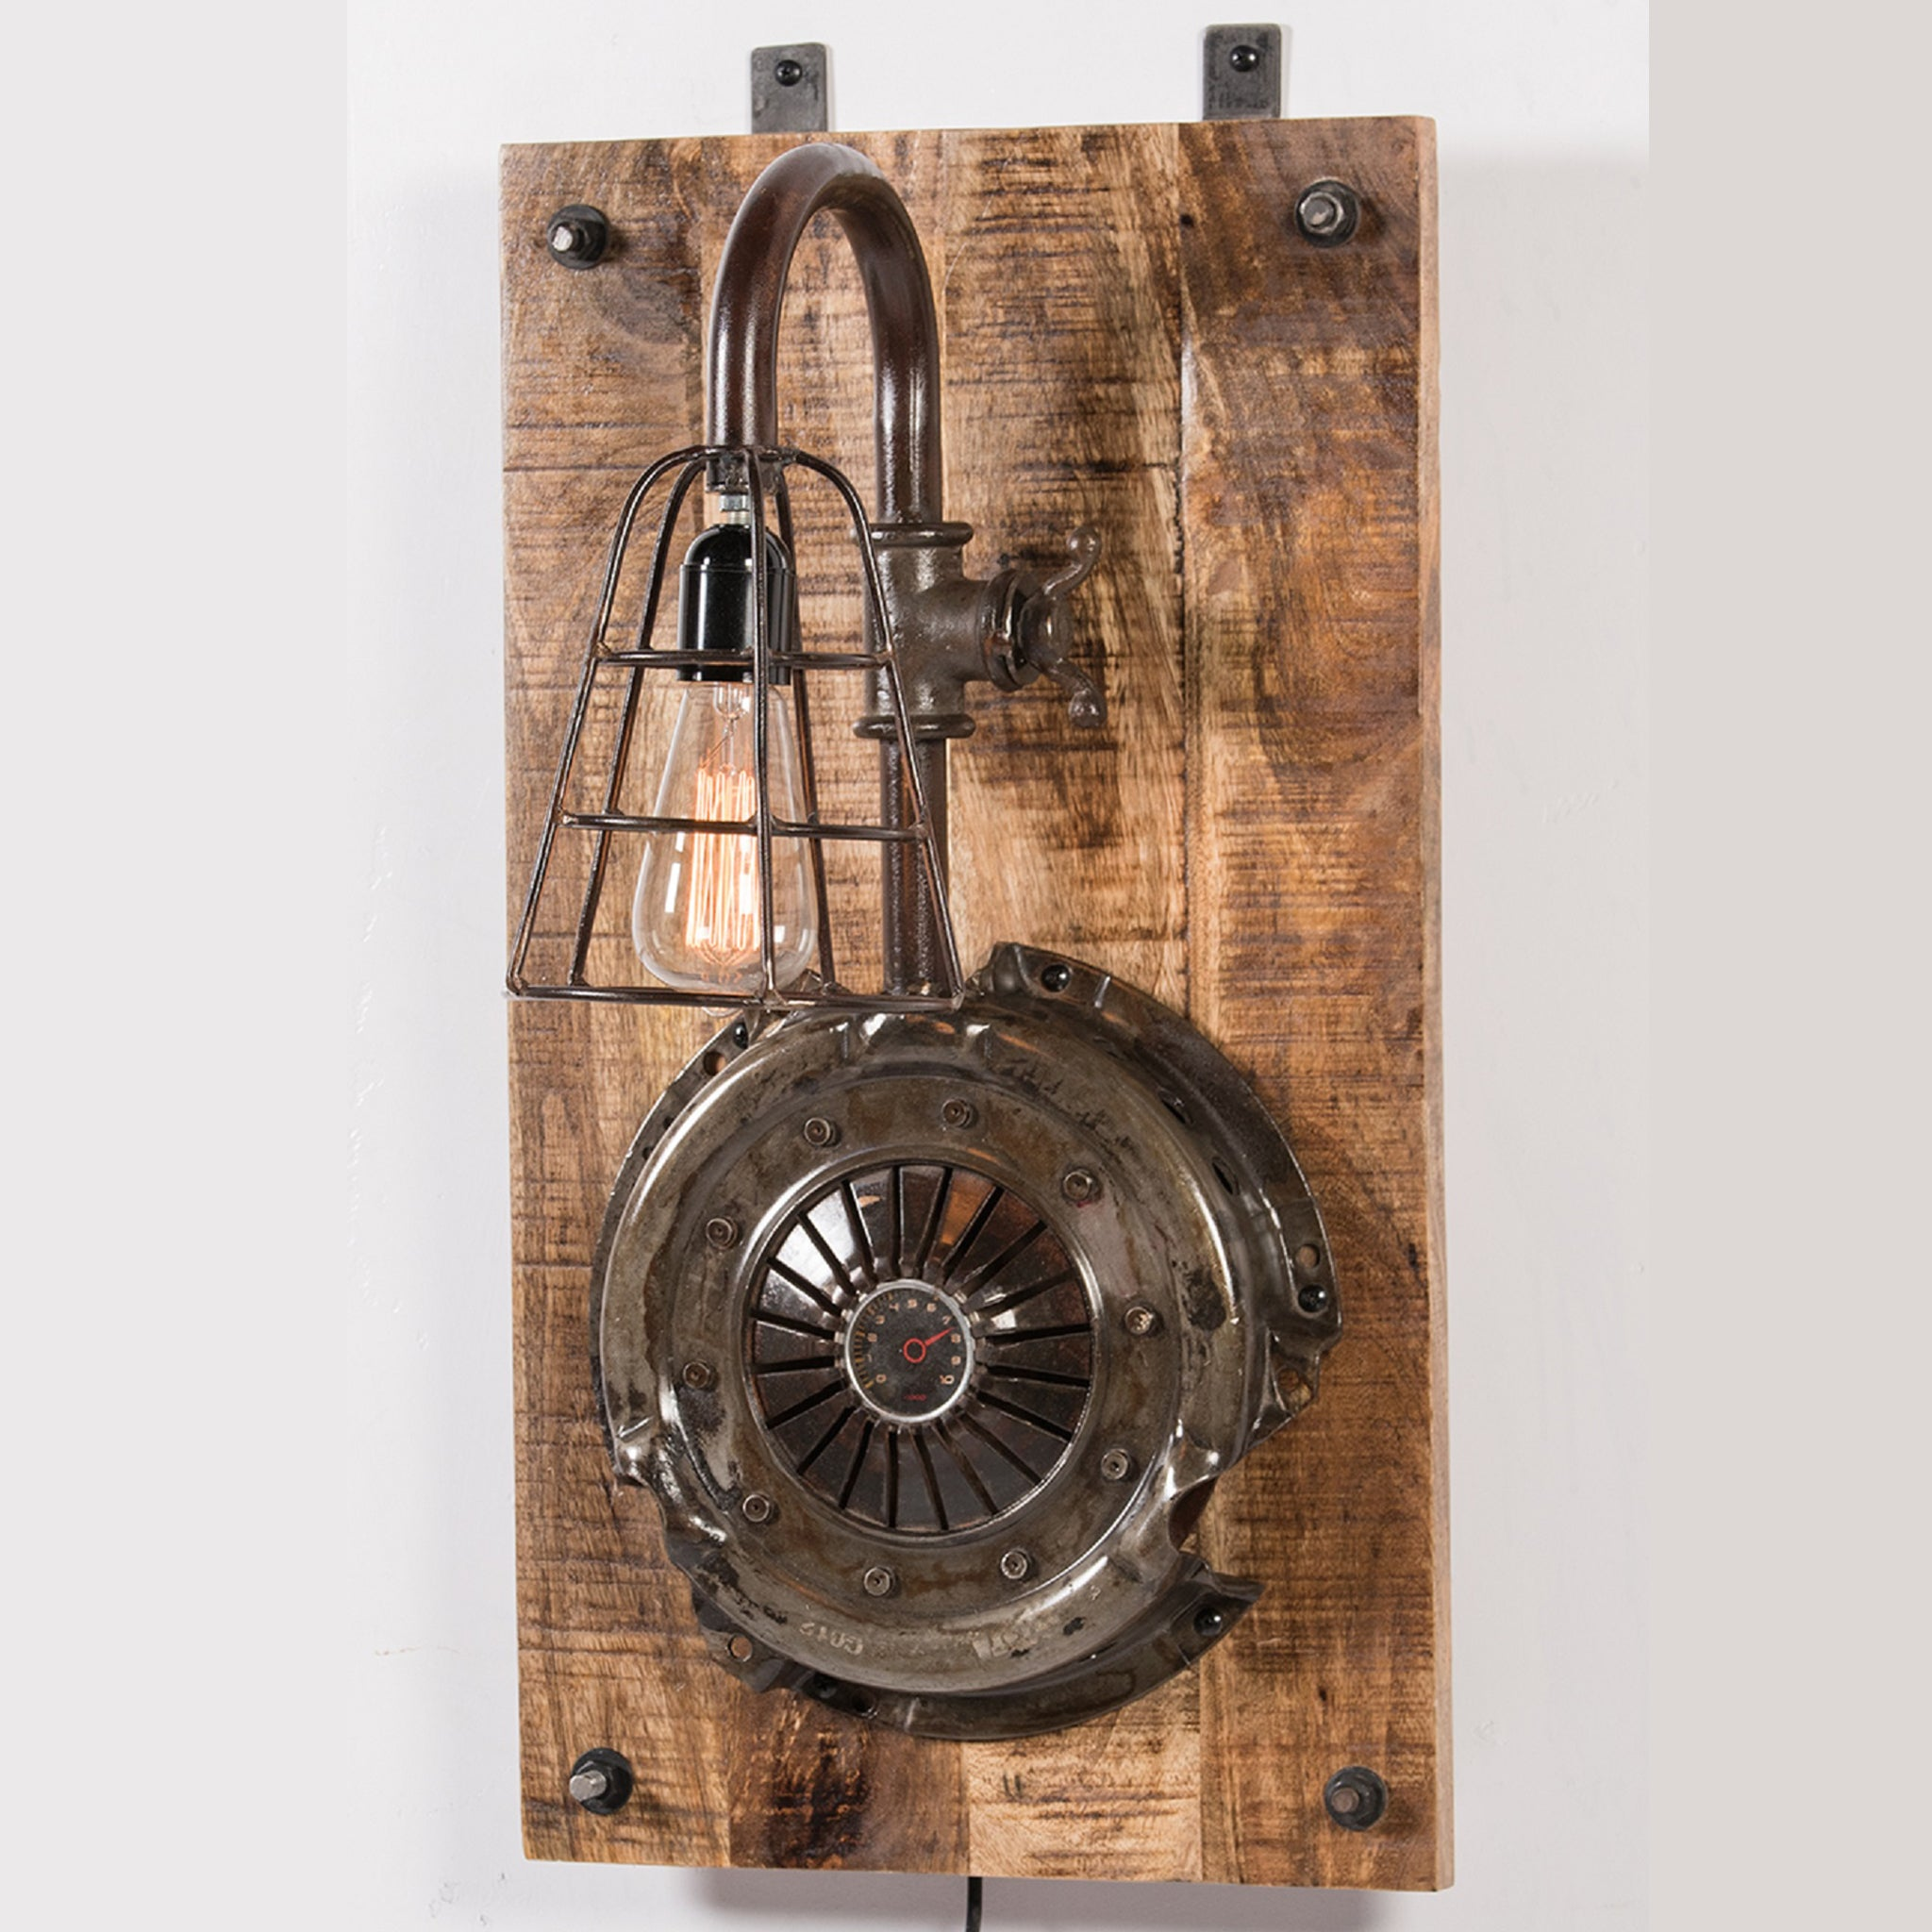 Clutch Plate & Iron Caged Wall Lamp